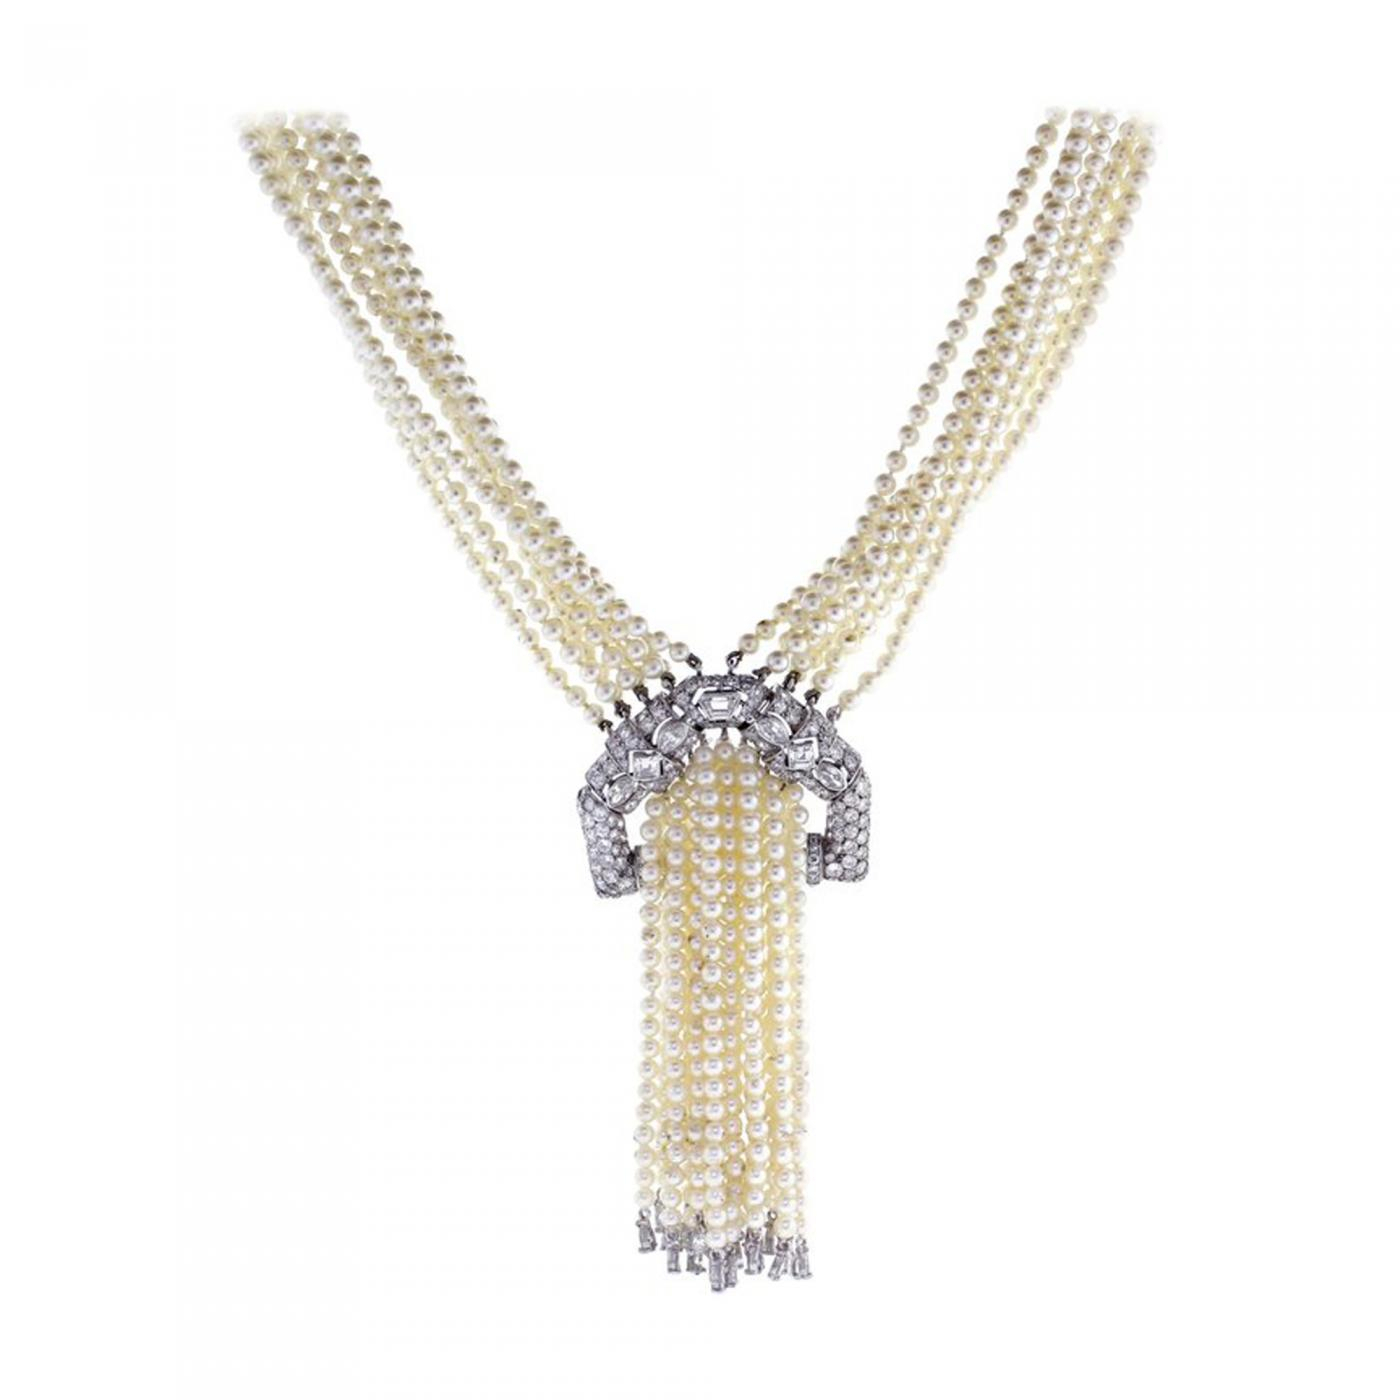 Art Deco Pearl And Diamond Sautoir Necklace Intended For Most Recent Diamond Sautoir Necklaces In Platinum (View 11 of 25)